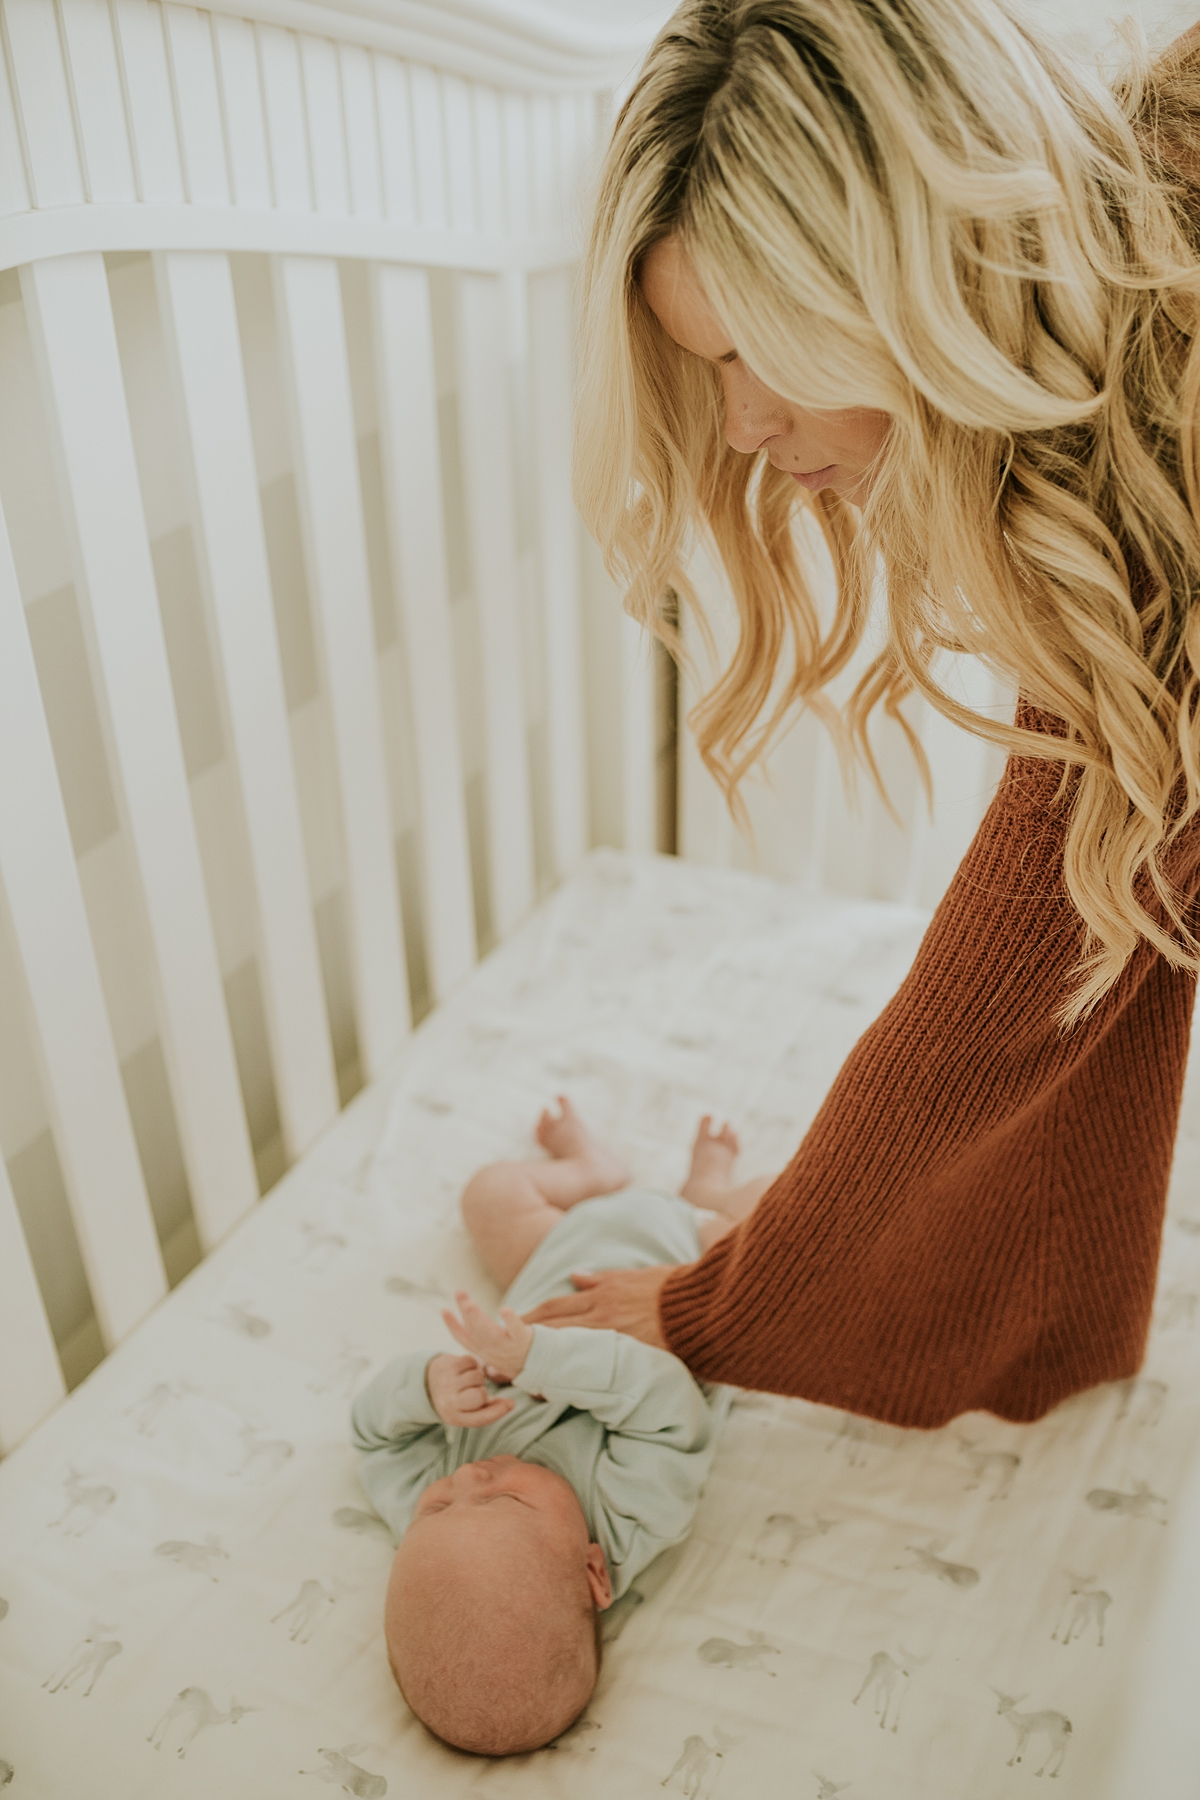 Orange County family photographer. Newborn boy lays in his bed while mom reaches over the crib to caress him during in-home newborn session with Krystil McDowall Photography